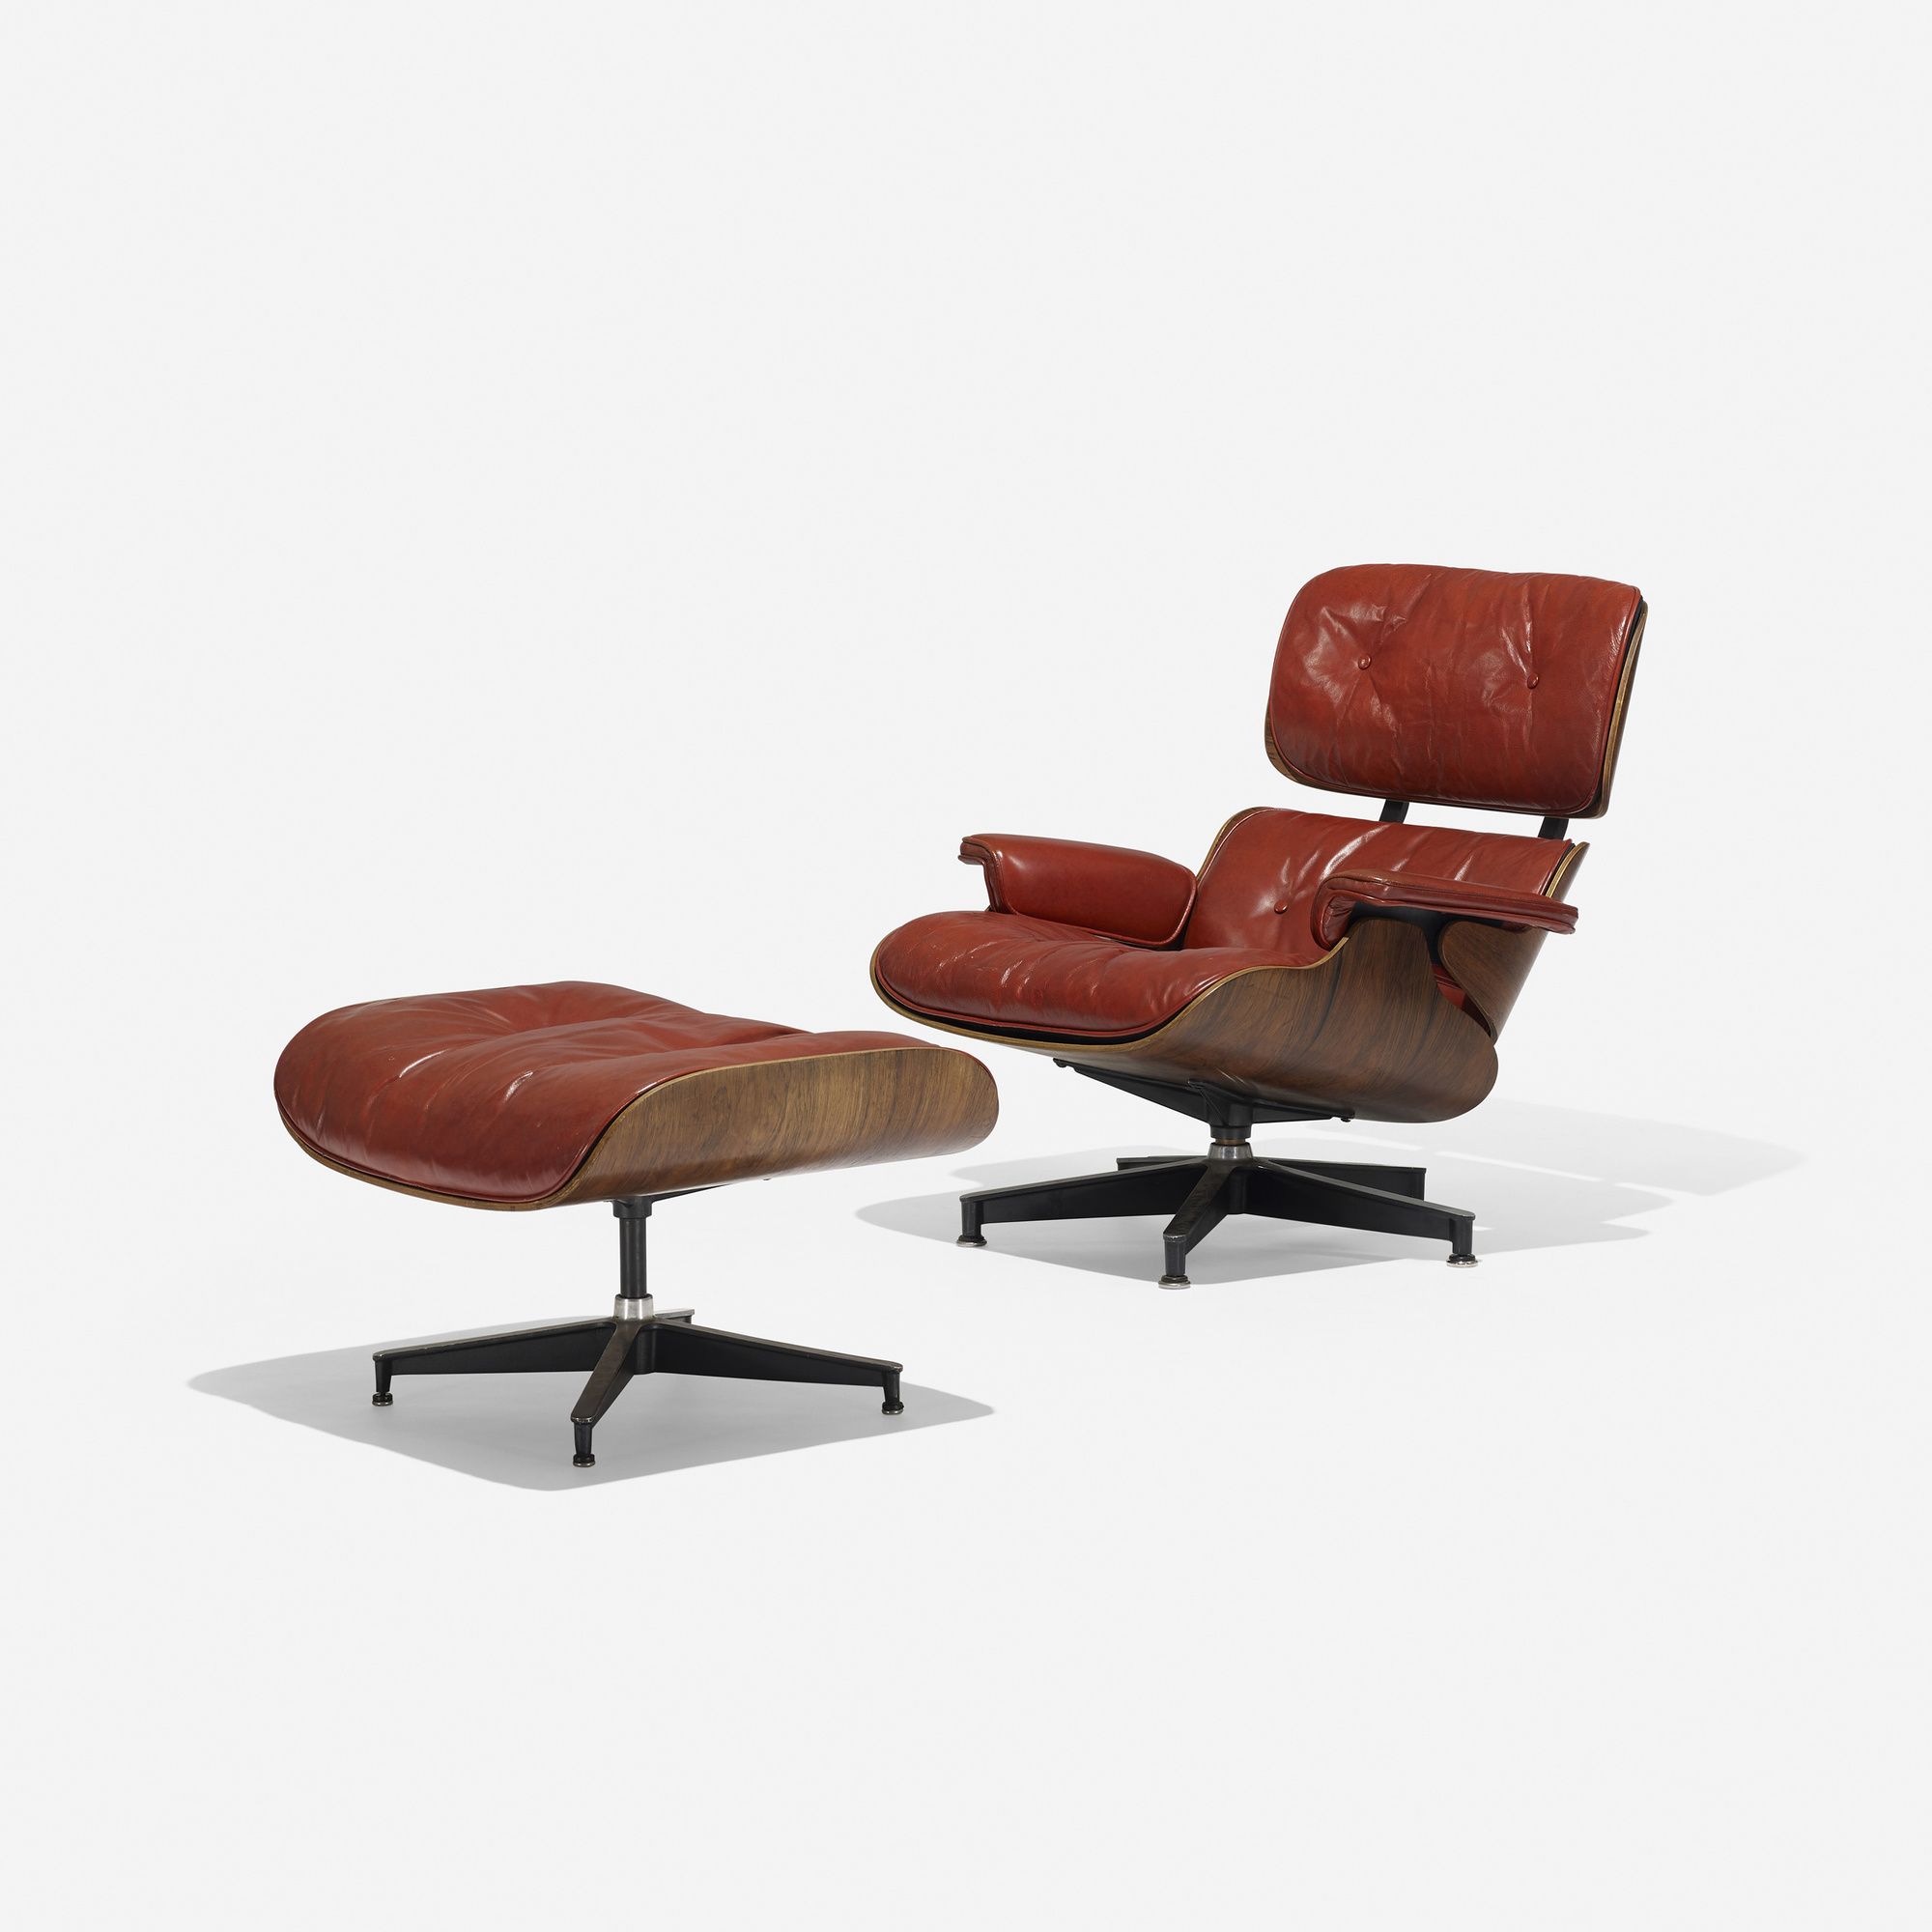 Chaise Design Eames Charles And Ray Eames Art 120 Charles And Ray Eames 670 Lounge